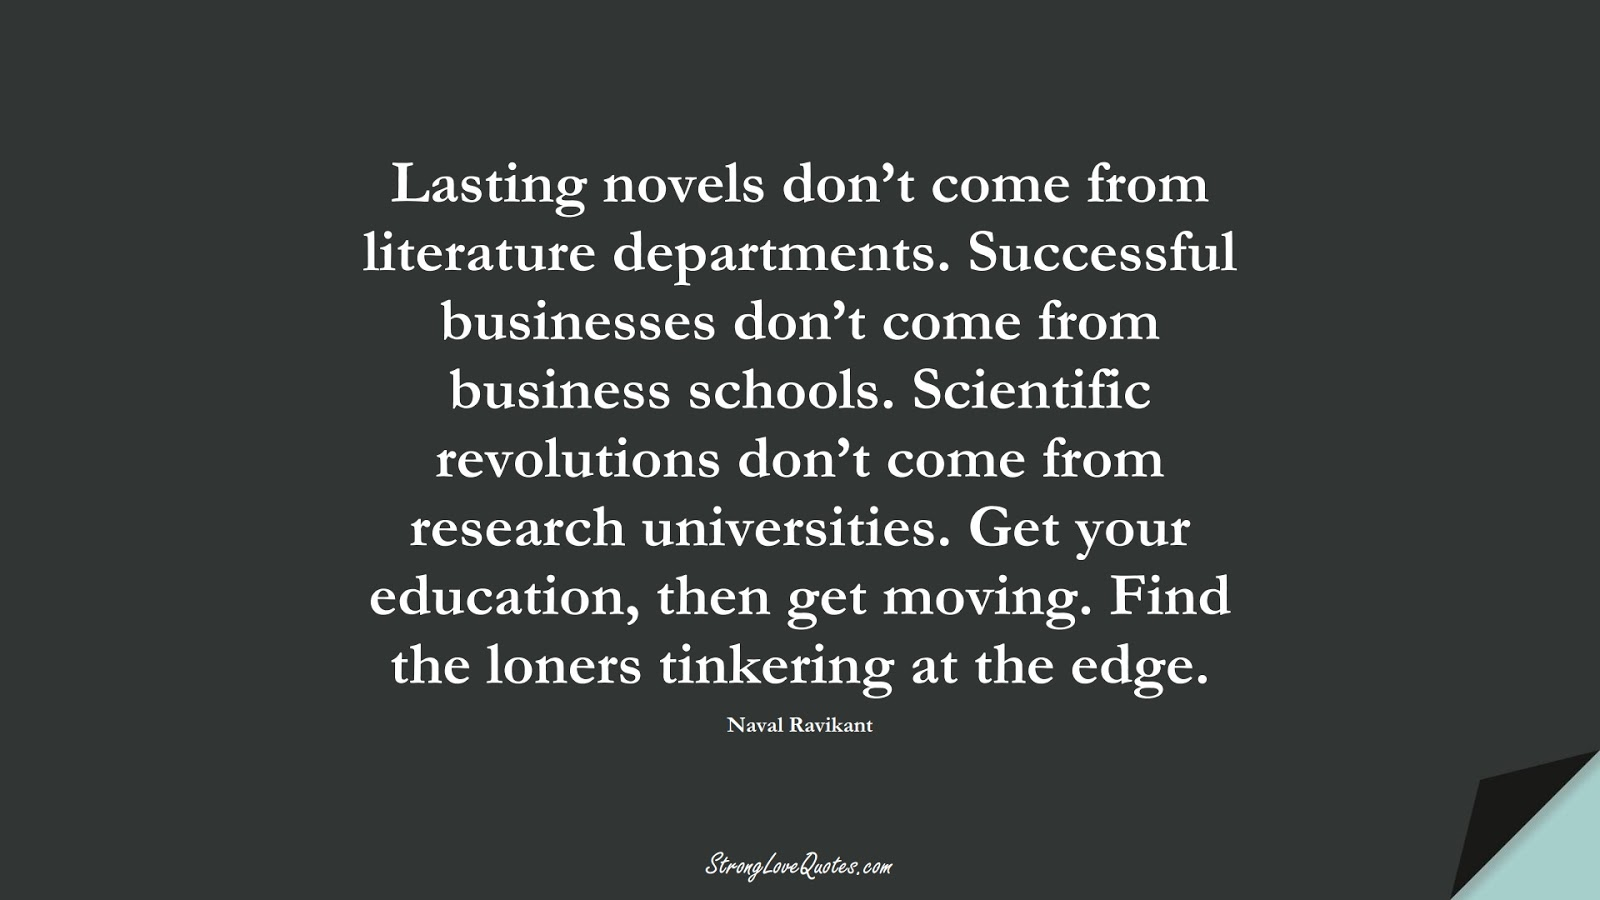 Lasting novels don't come from literature departments. Successful businesses don't come from business schools. Scientific revolutions don't come from research universities. Get your education, then get moving. Find the loners tinkering at the edge. (Naval Ravikant);  #EducationQuotes